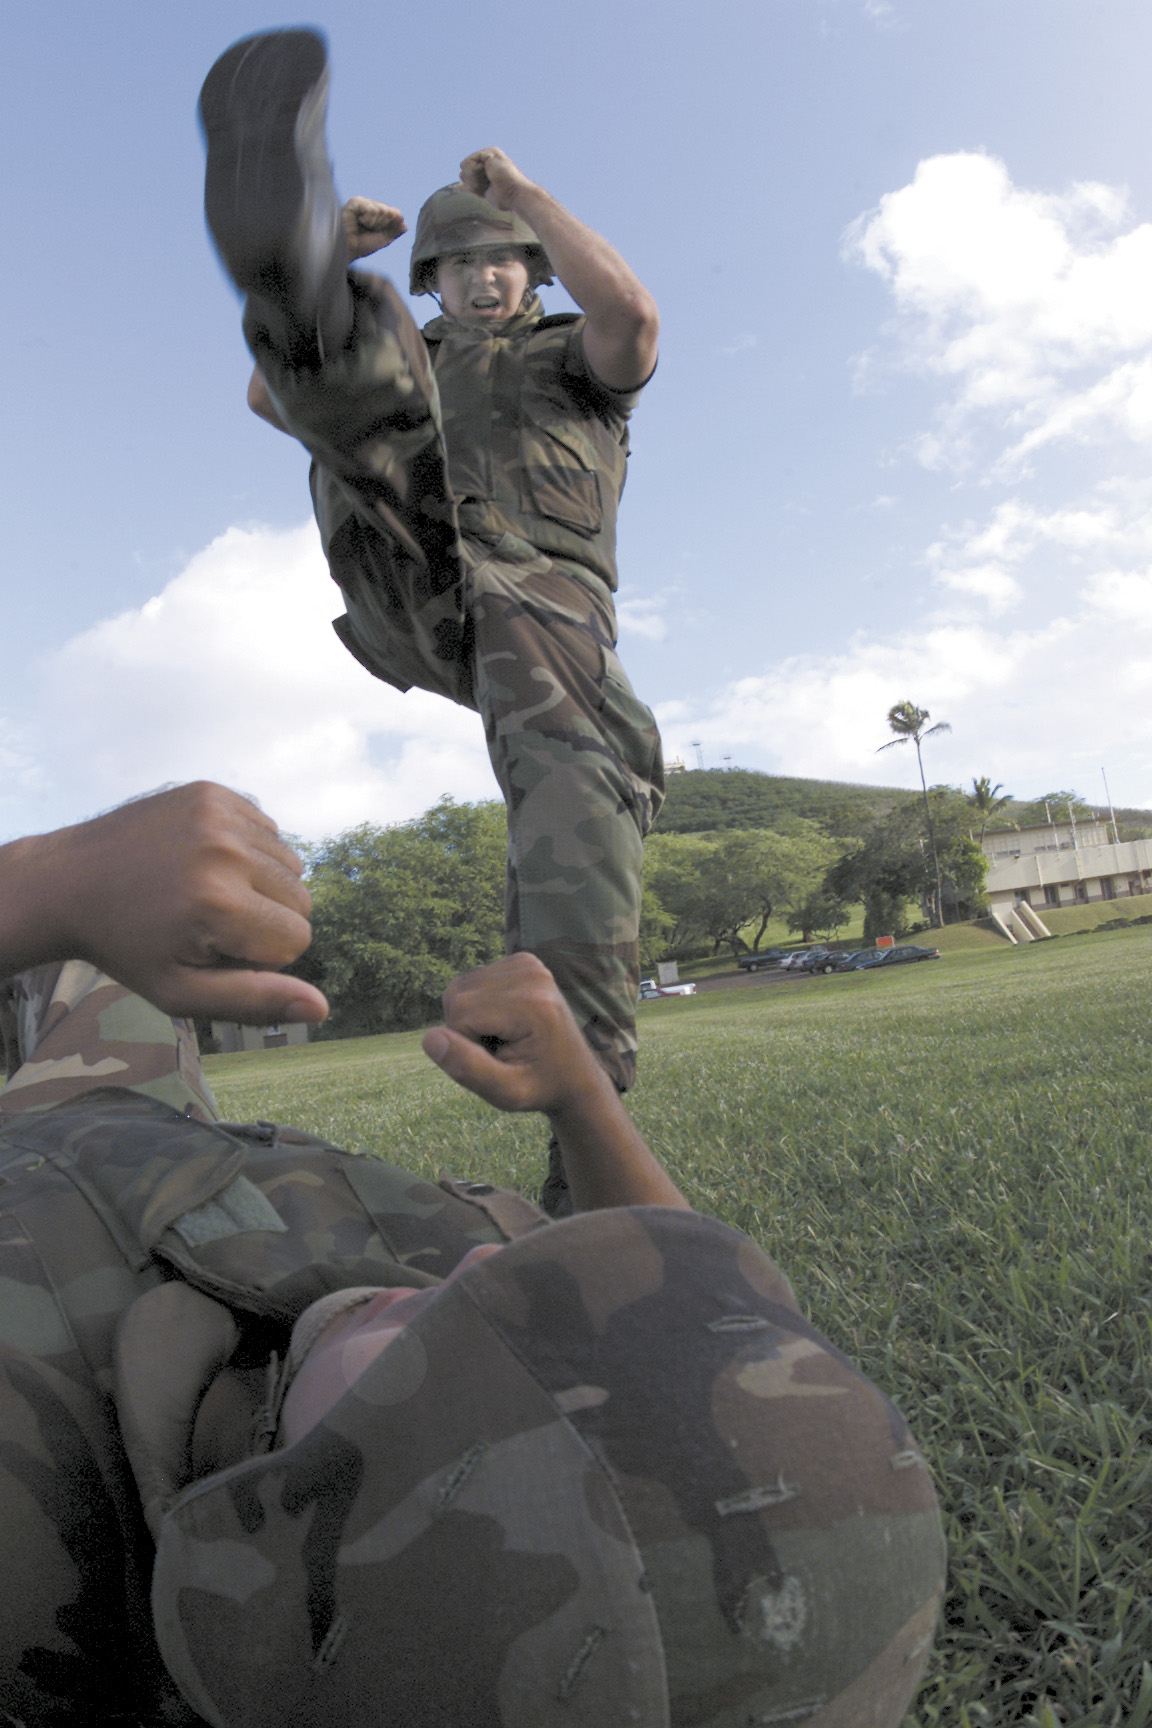 A Soldier Is About To Stomp On Another Lying The Ground